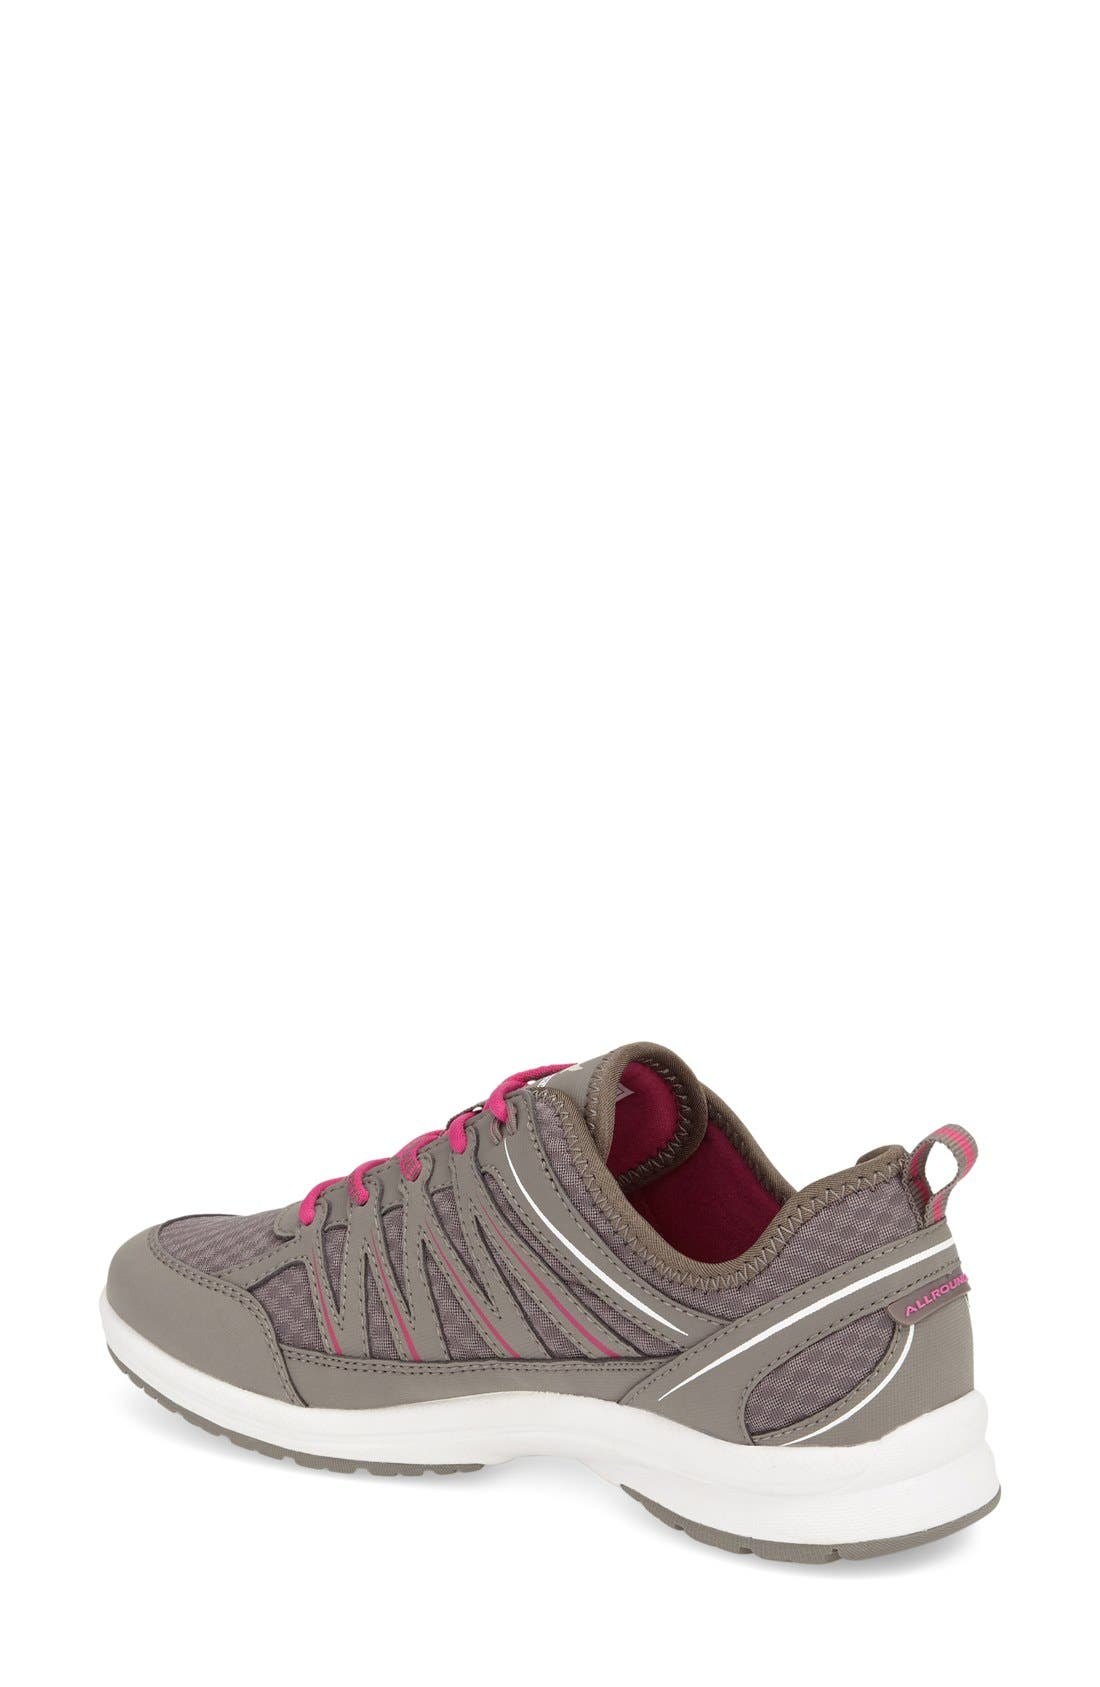 'Darina' Sneaker,                             Alternate thumbnail 4, color,                             036